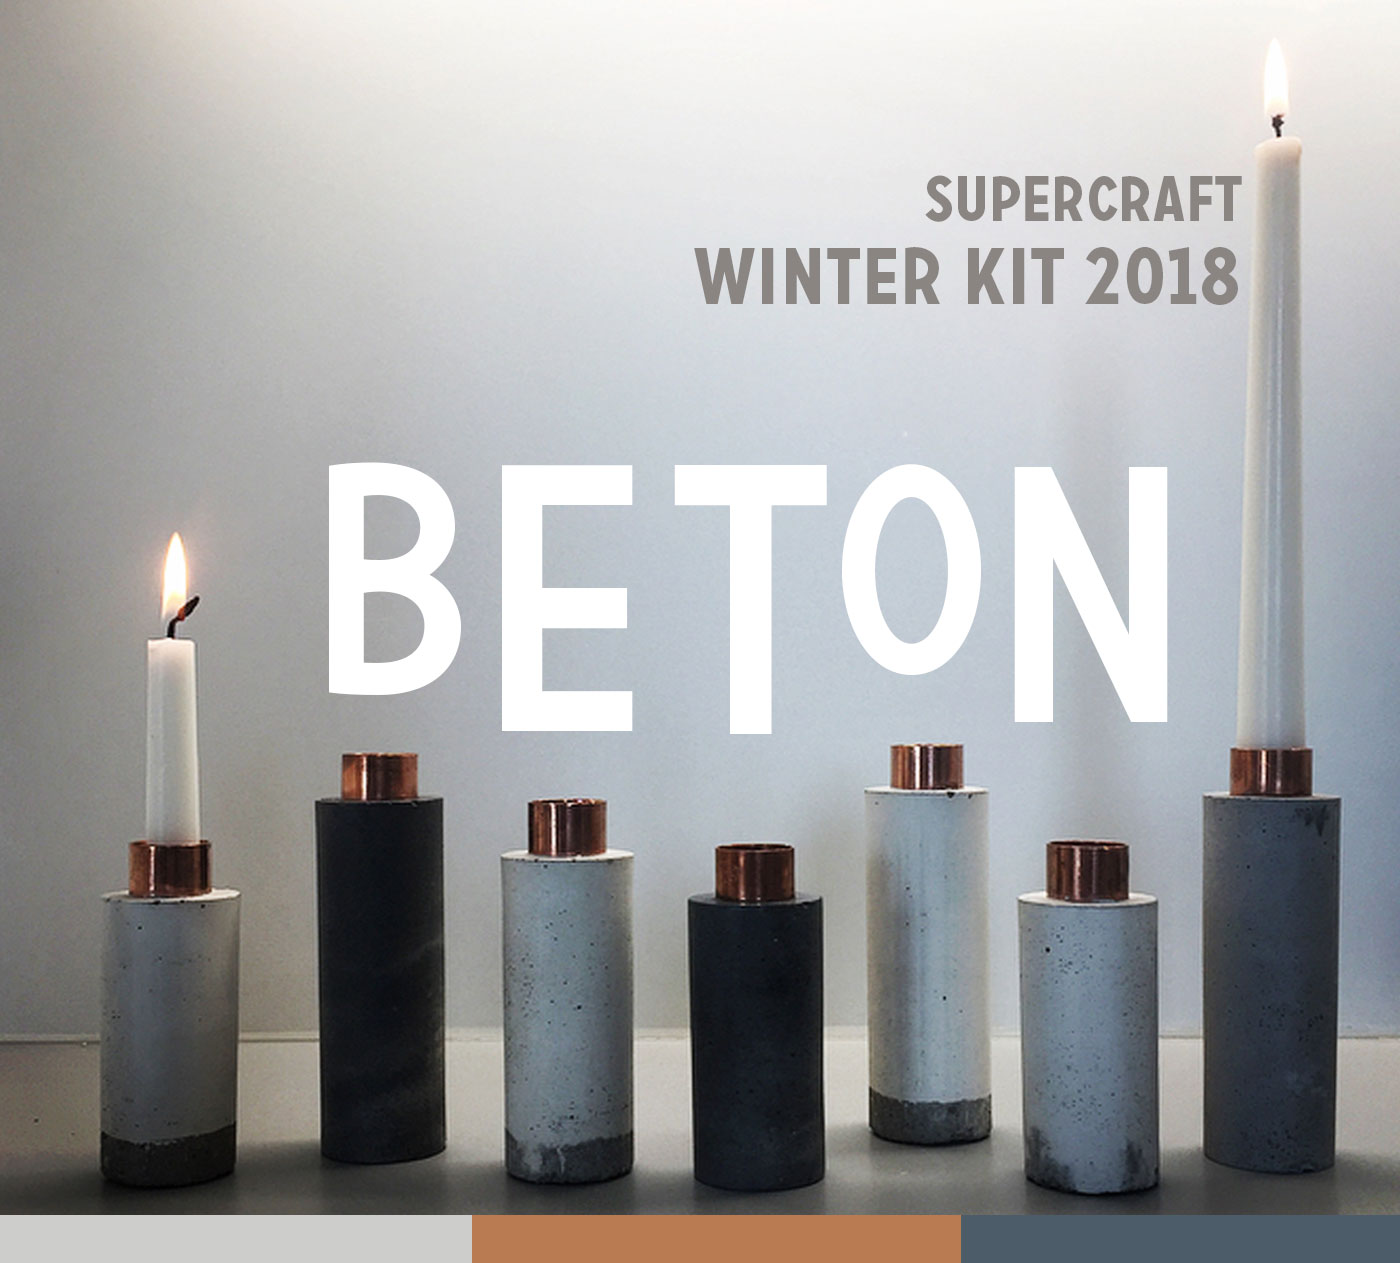 Kit 39 - Winter 2018